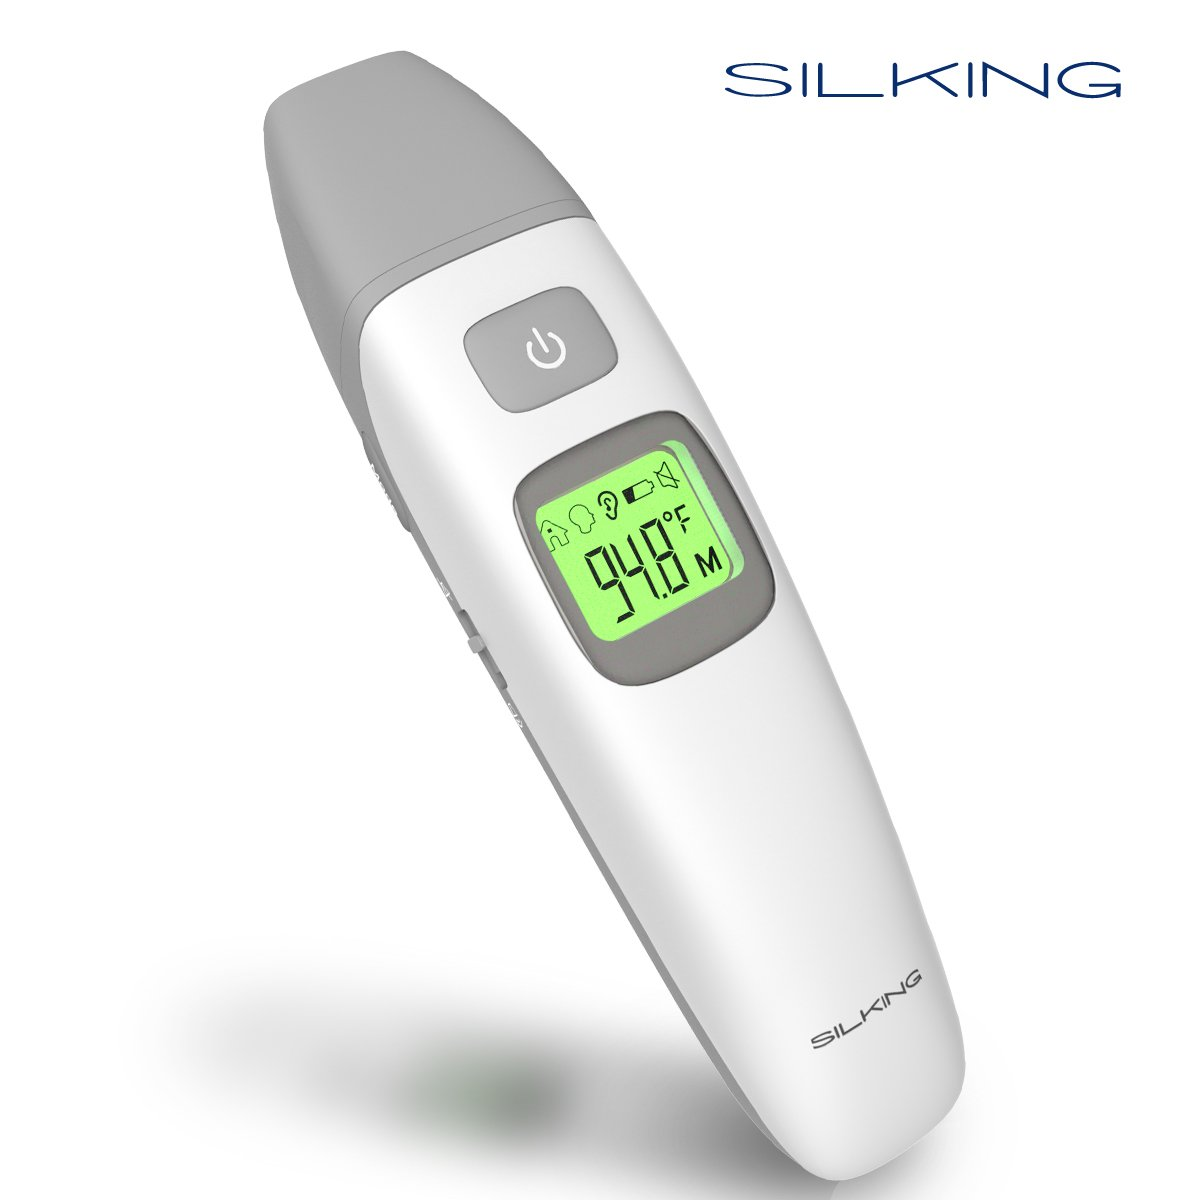 SILKING Digital Forehead and Ear Baby Thermometer for Fever, Ambient Mode, Medical Infrared Smart Thermometer, for Infant, Toddler, or Adult, FDA and CE approved, Fast-reading,LCD display backlight